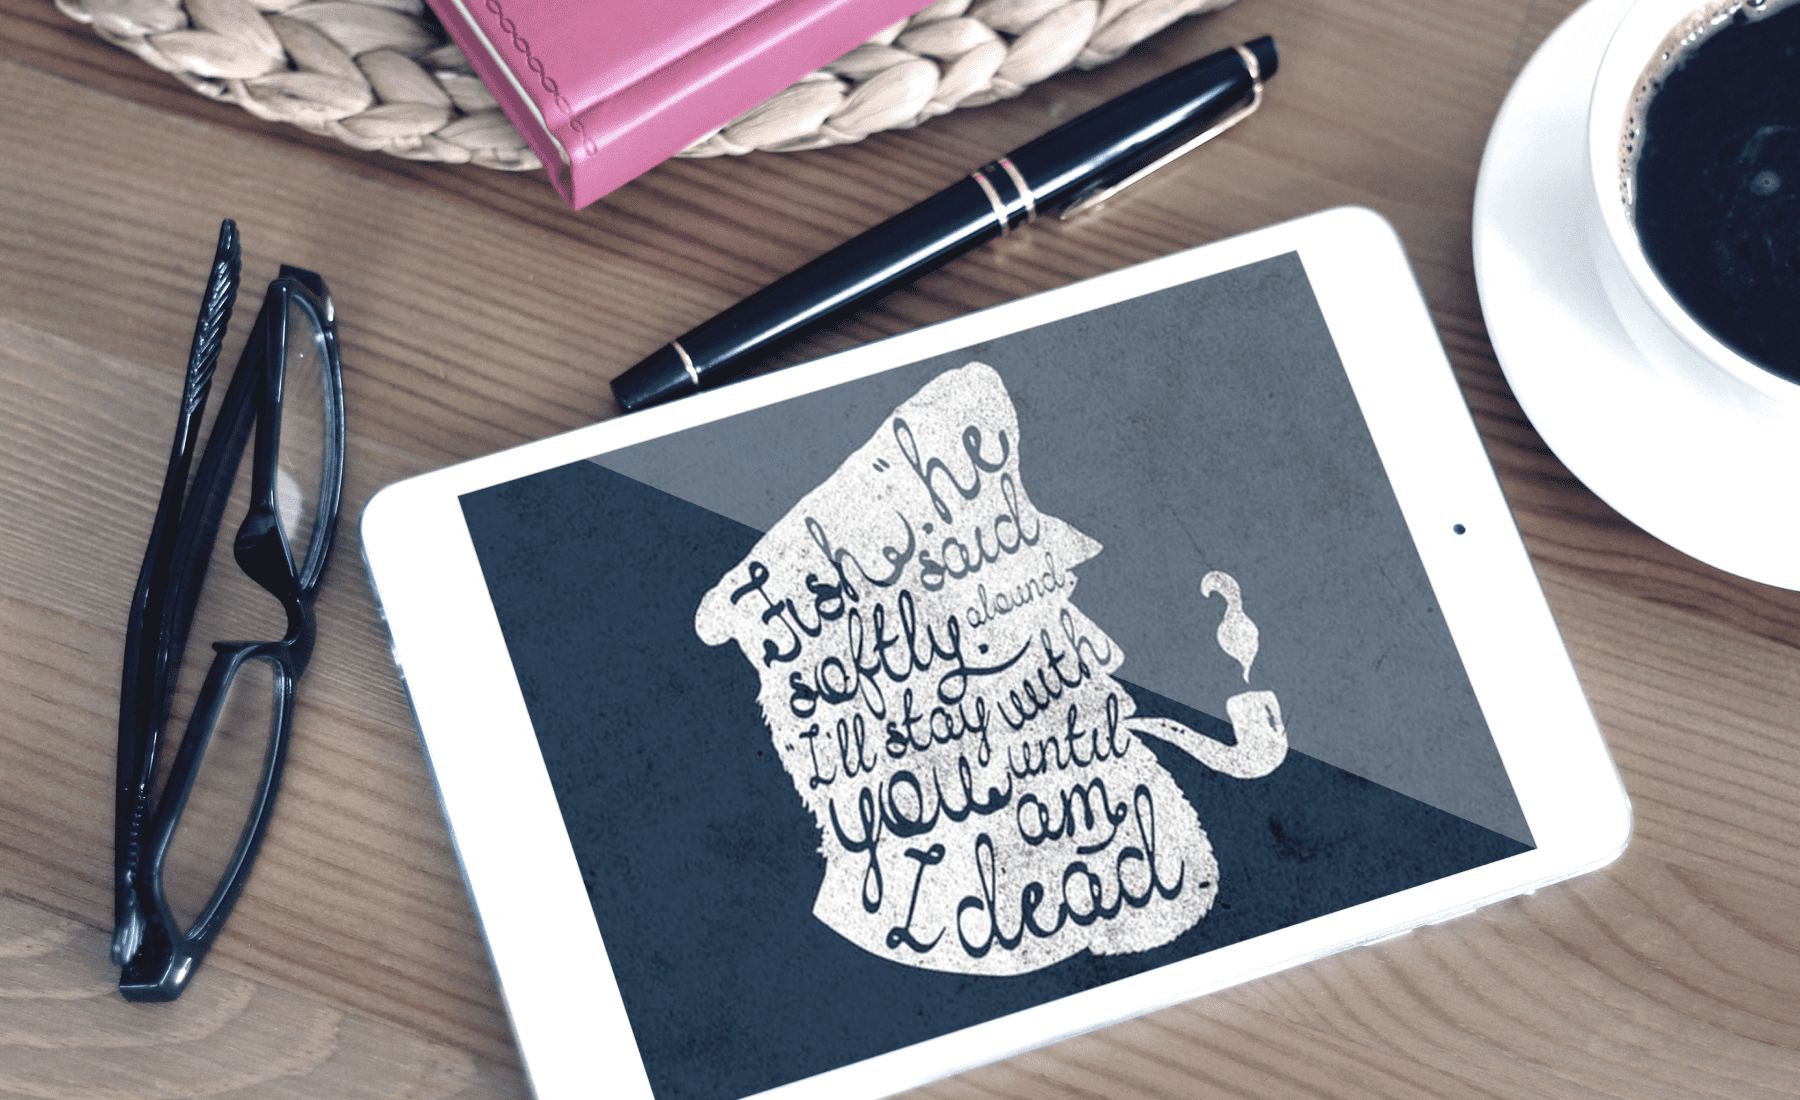 The tablet on which the inscription is displayed. Handwritten Fonts Bundle.